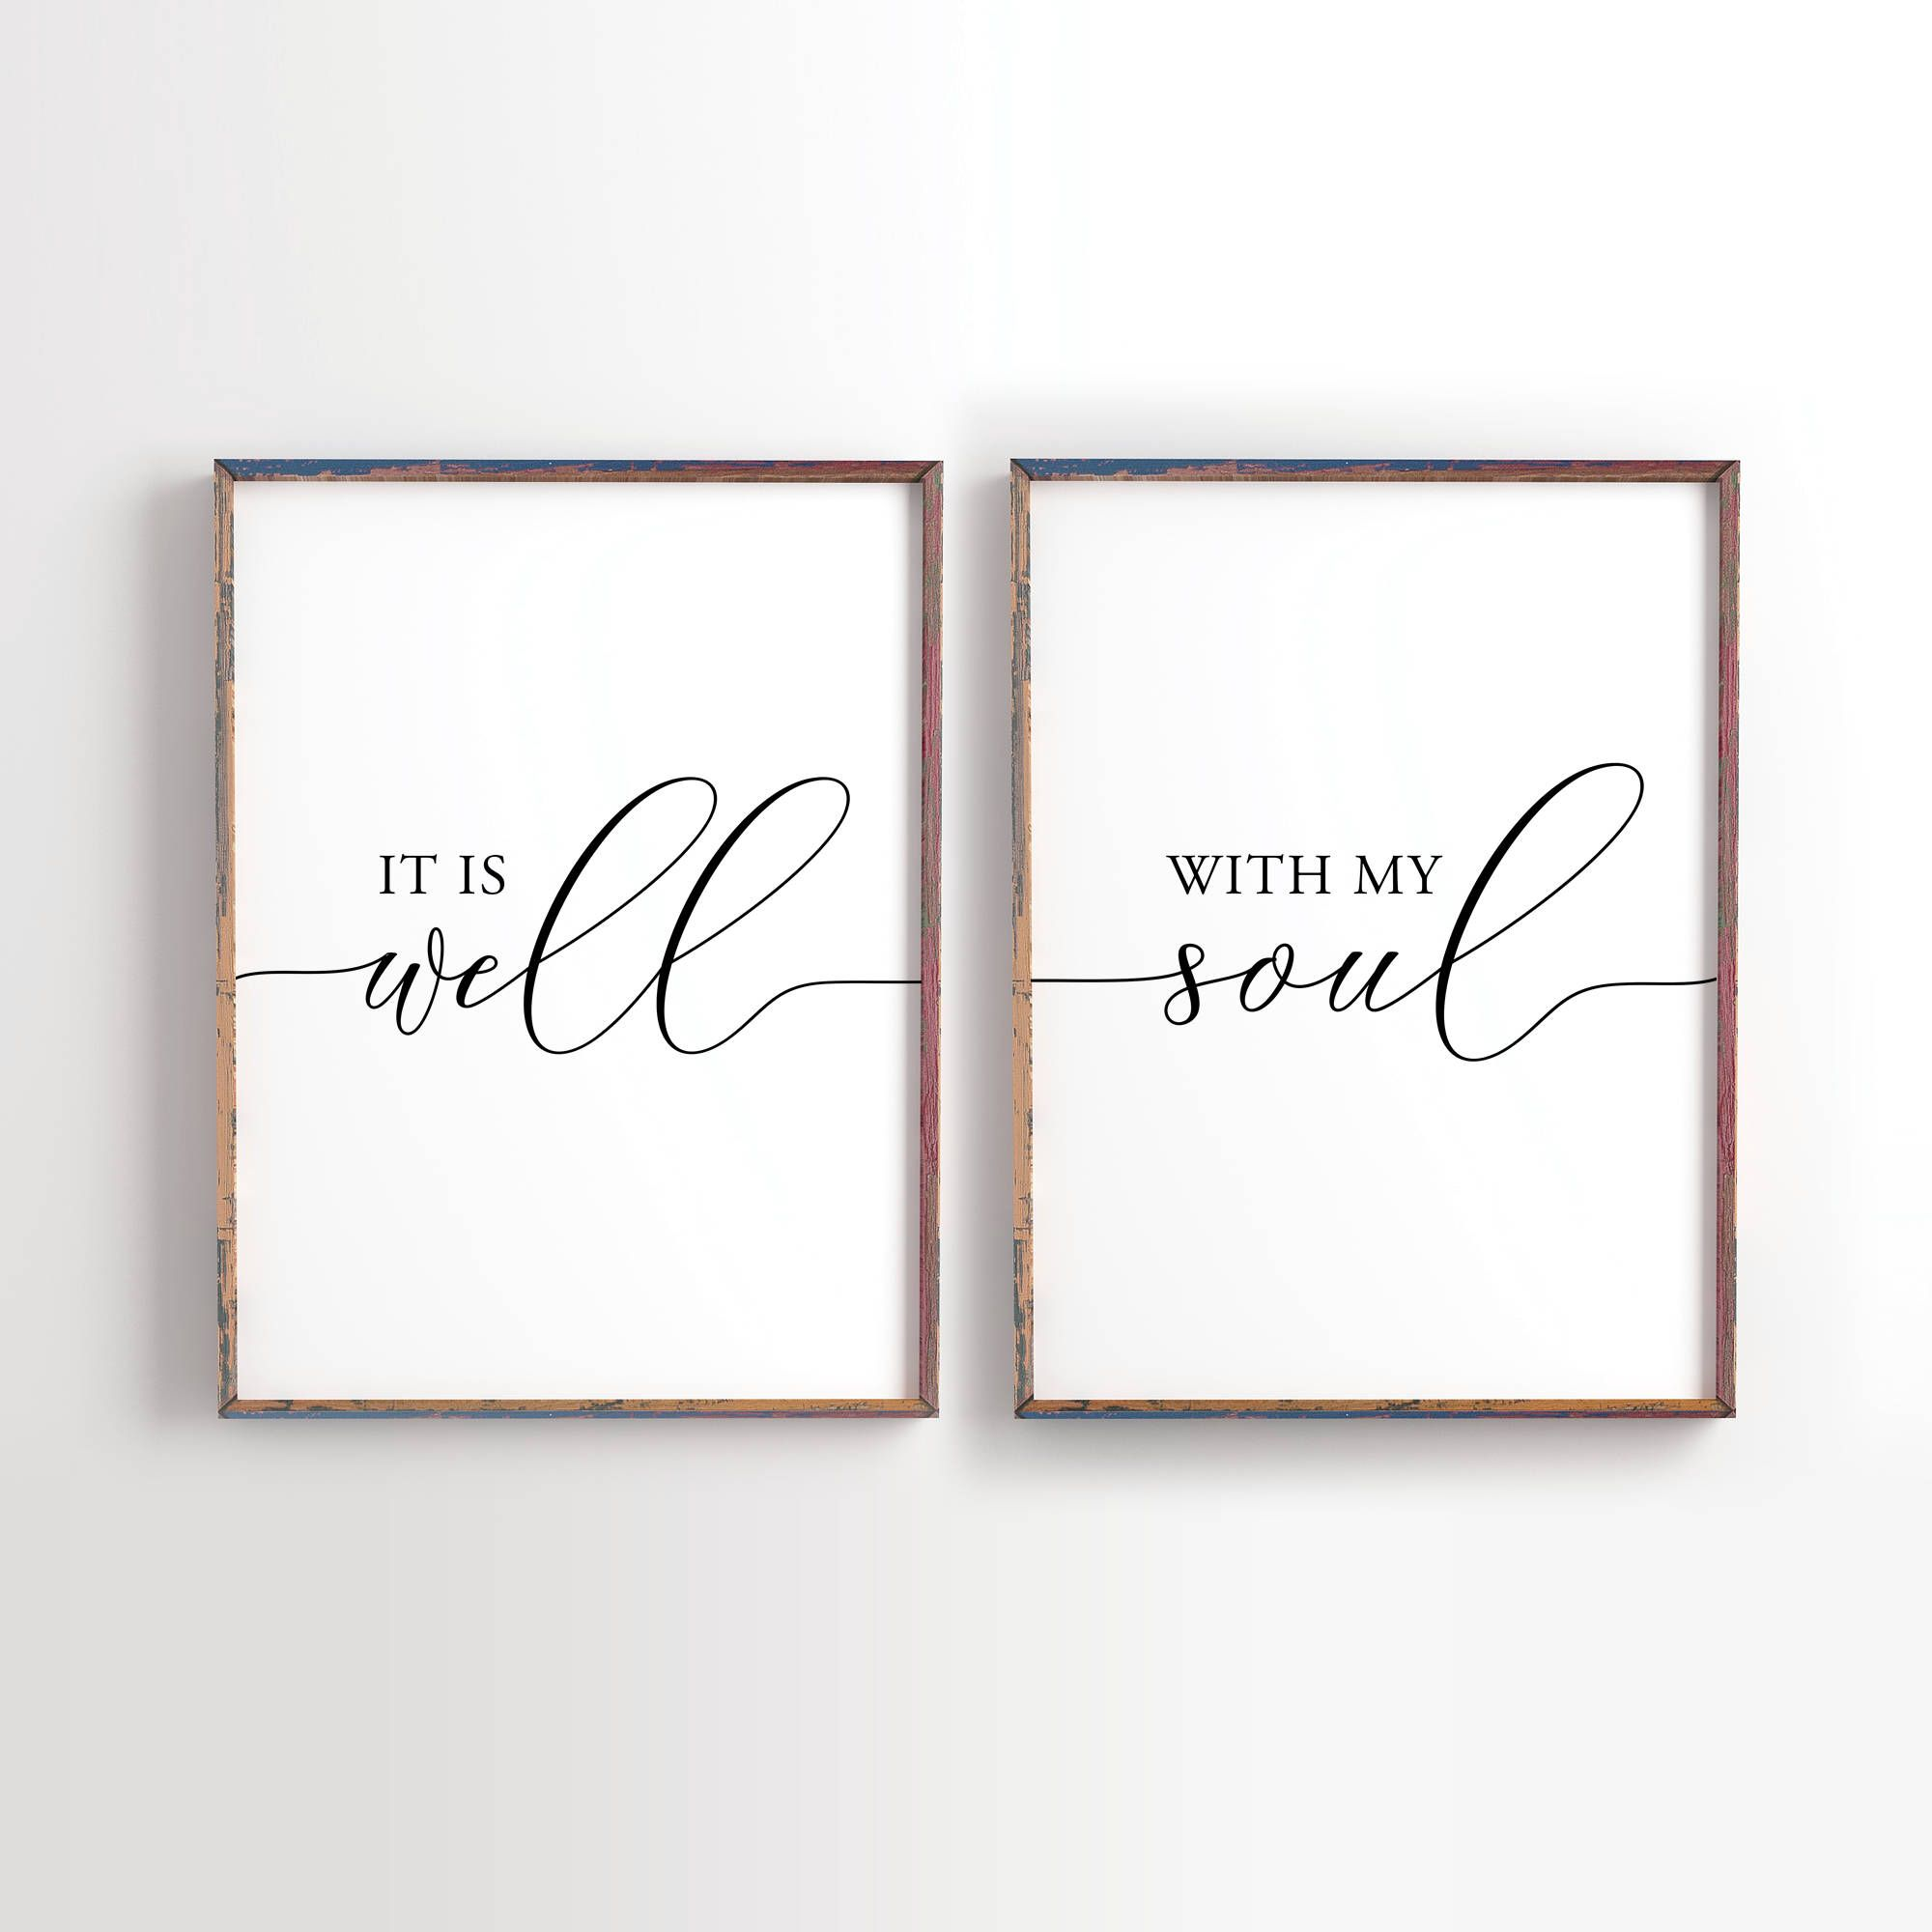 It Is Well With My Soul Printable Wedding Decor Wedding Etsy Christian Wall Art It Is Well With My Soul Printable Decor